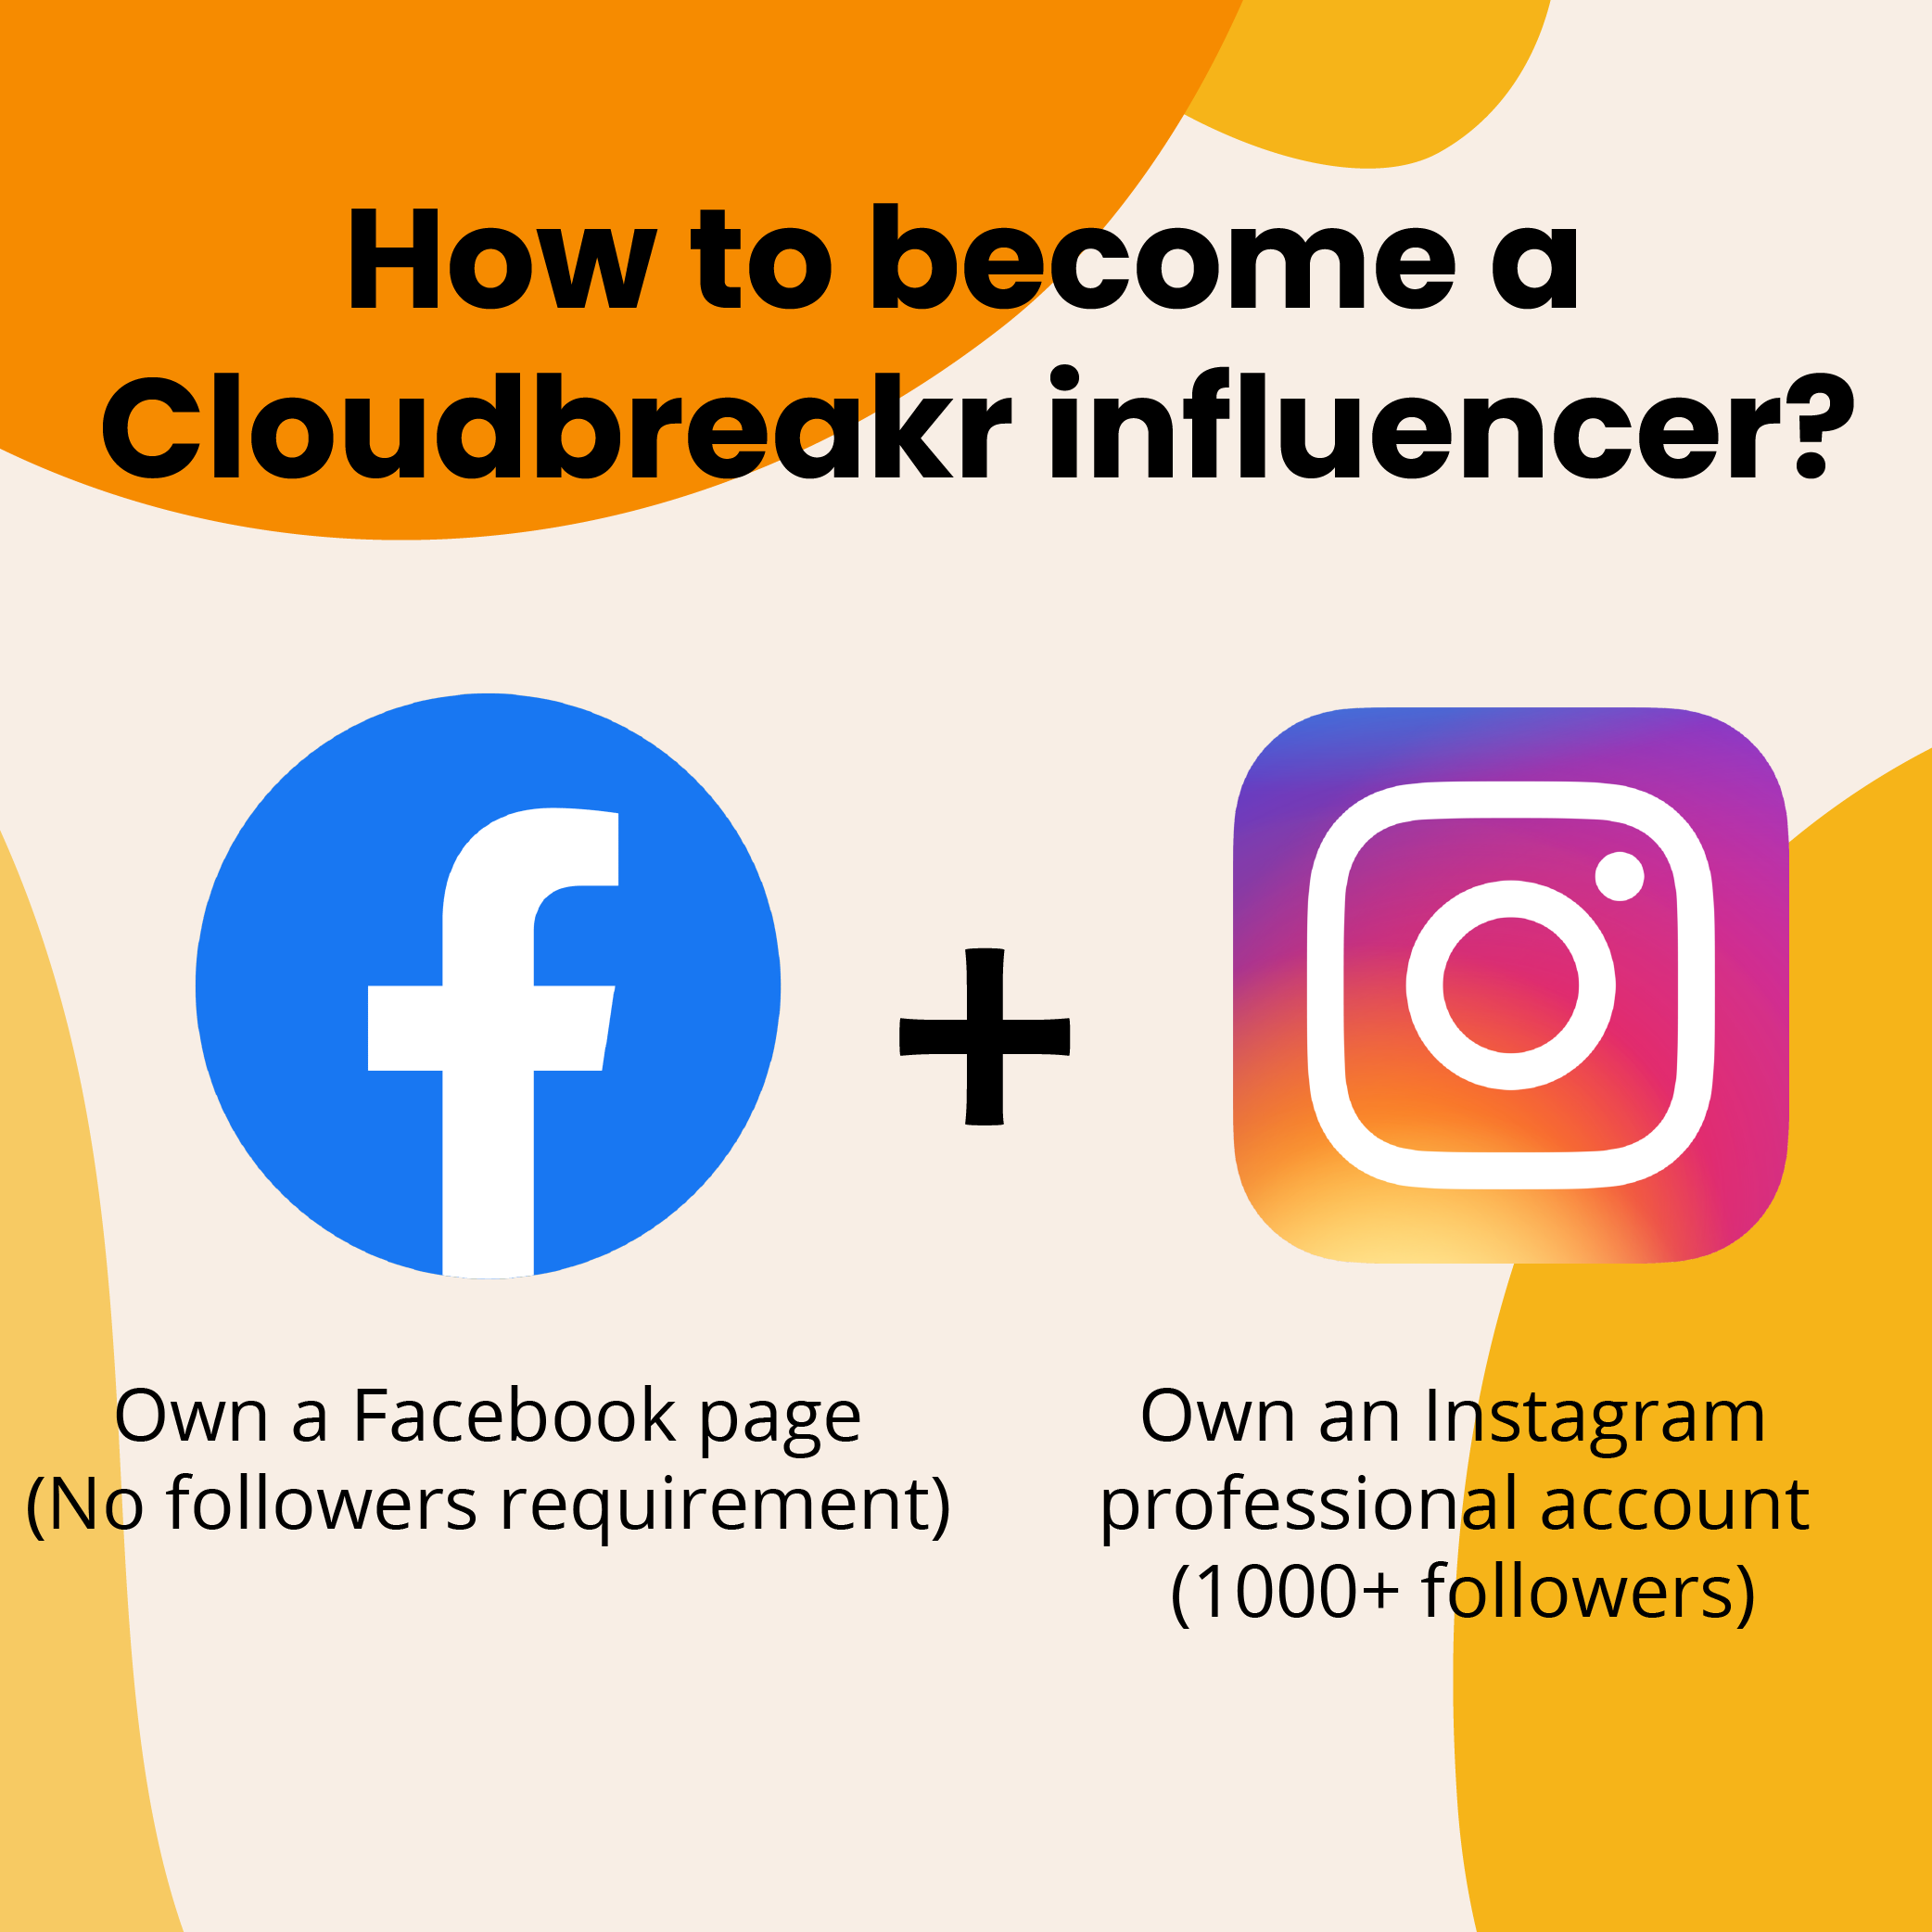 How to become a Cloudbreakr influencer